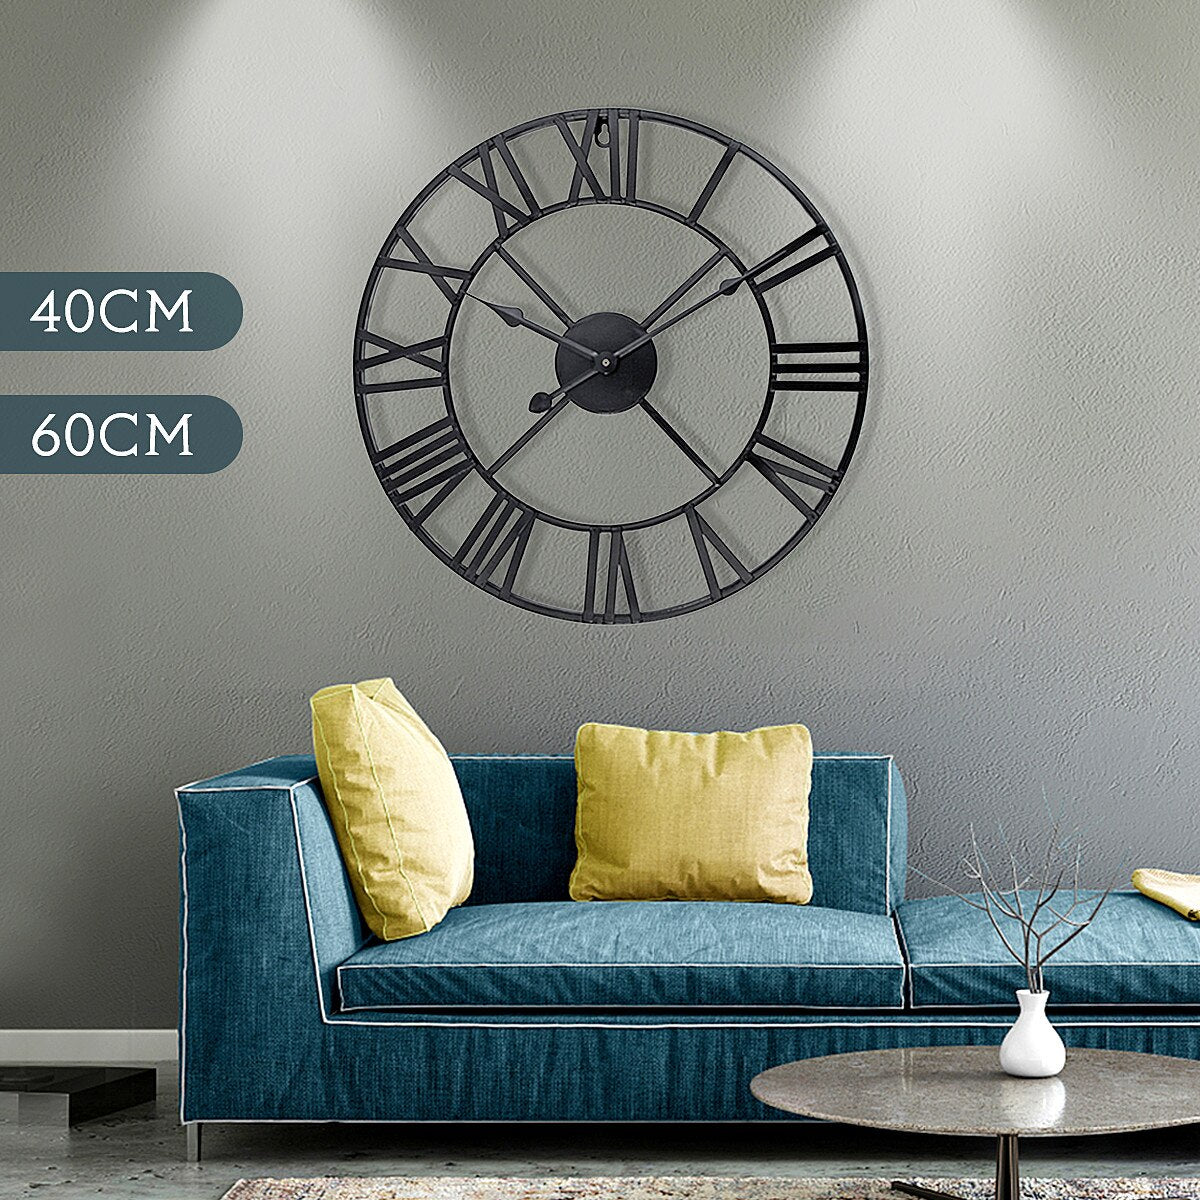 Newest 40cm/60cm Wall Clock Vintage Home Decor Livingroom Roman Round Shape Wall DecorativeHome Decoration Accessories Clock - WizWack